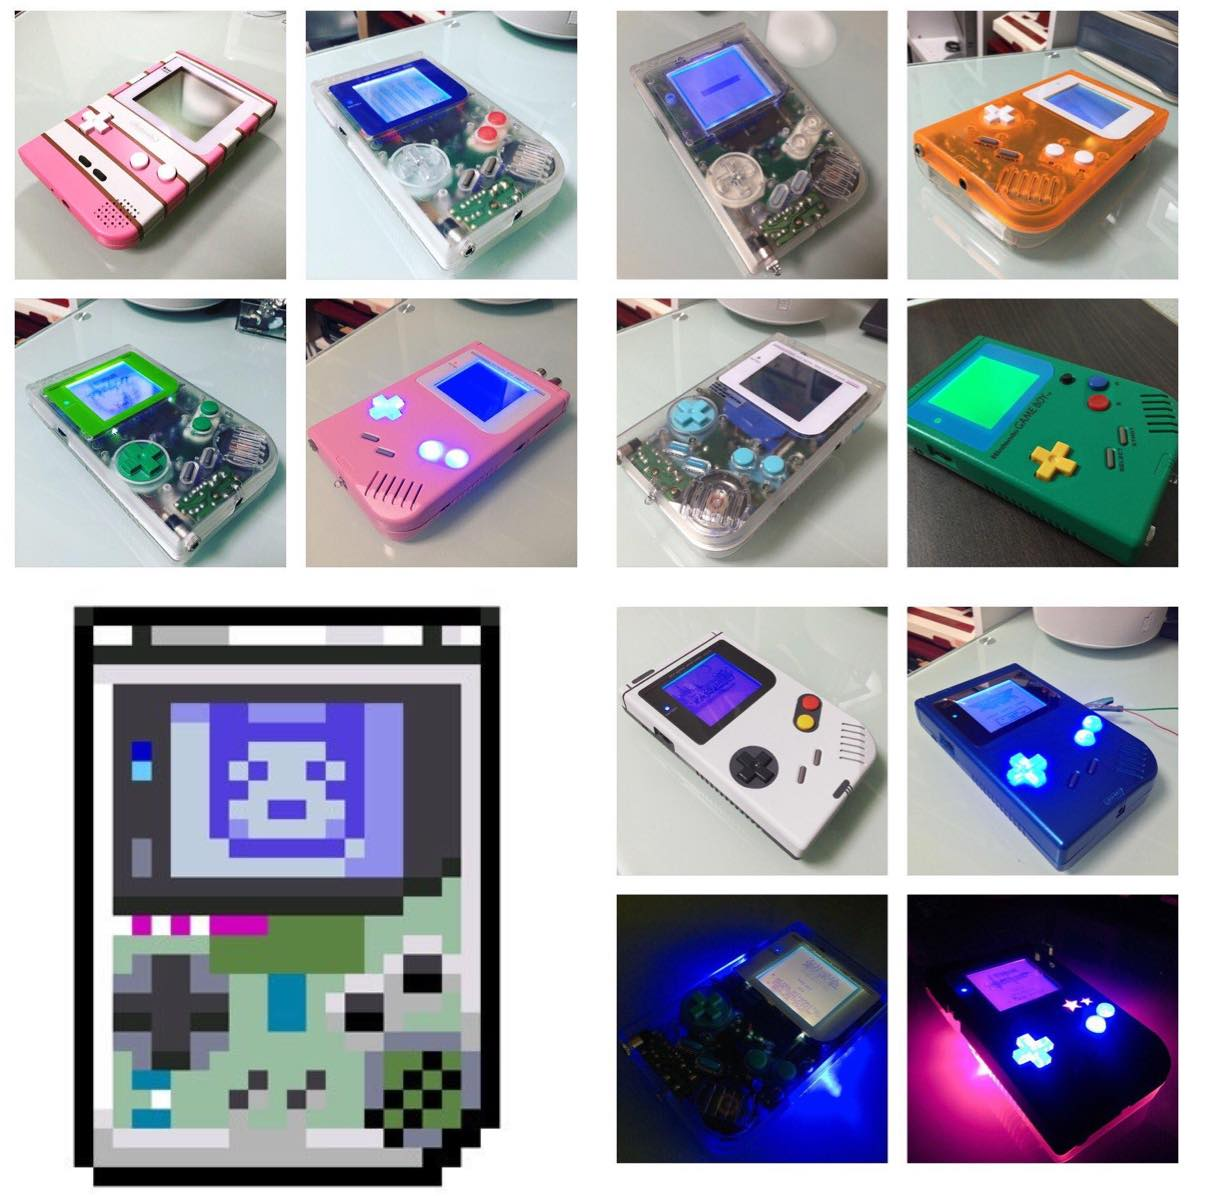 gameboy-diy4